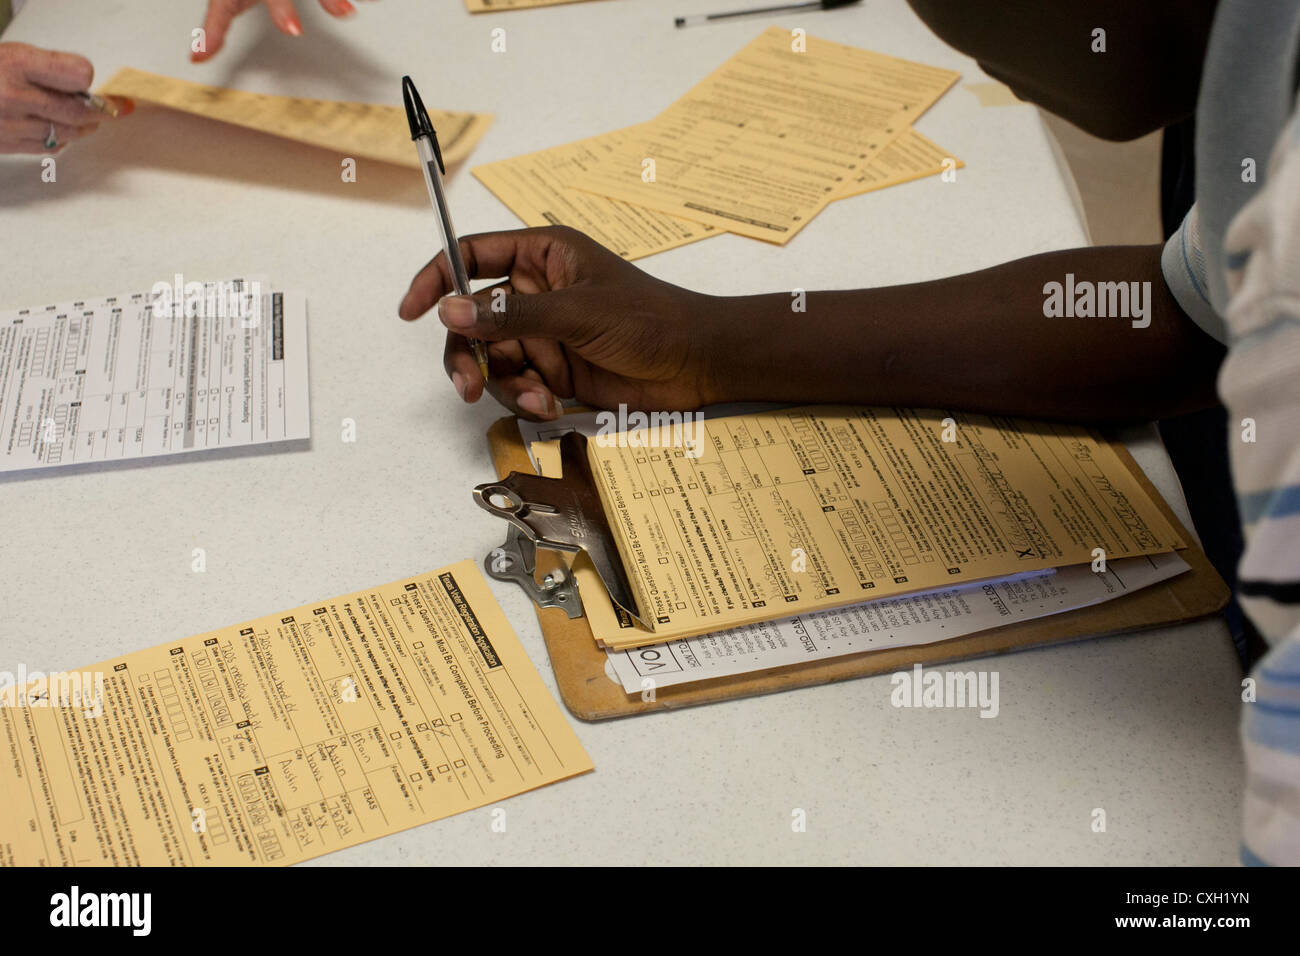 Parent volunteers conduct a voter registration drive for 18-year-olds at high school in Austin, Texas - Stock Image